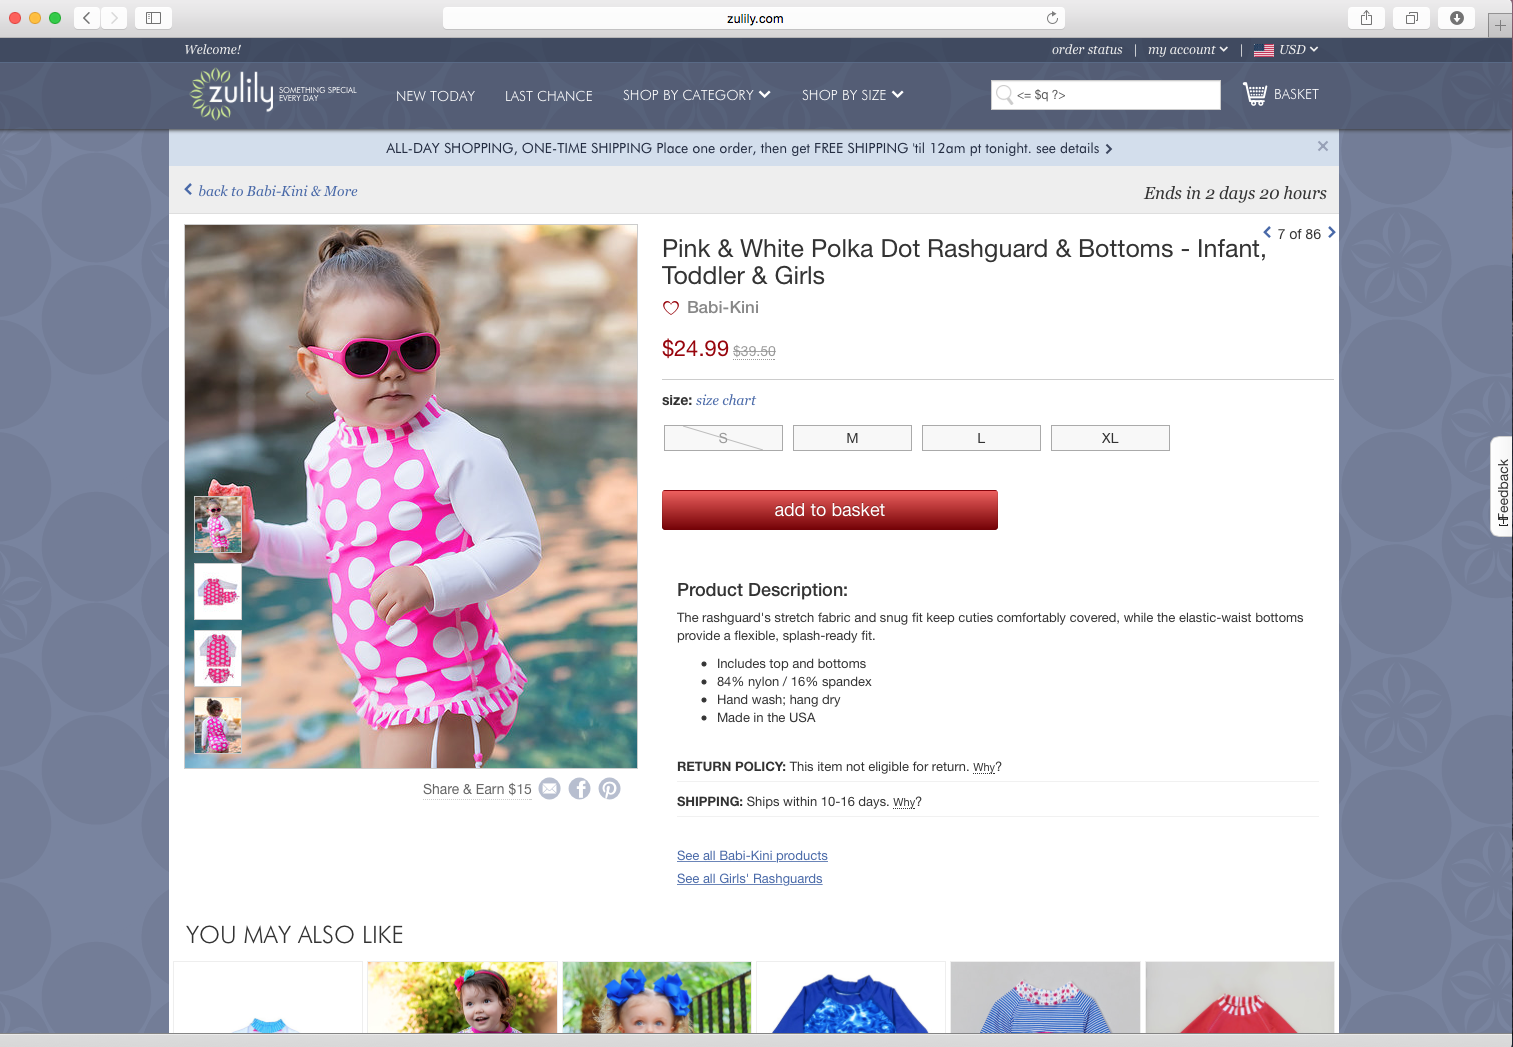 Jax on Zulily 2